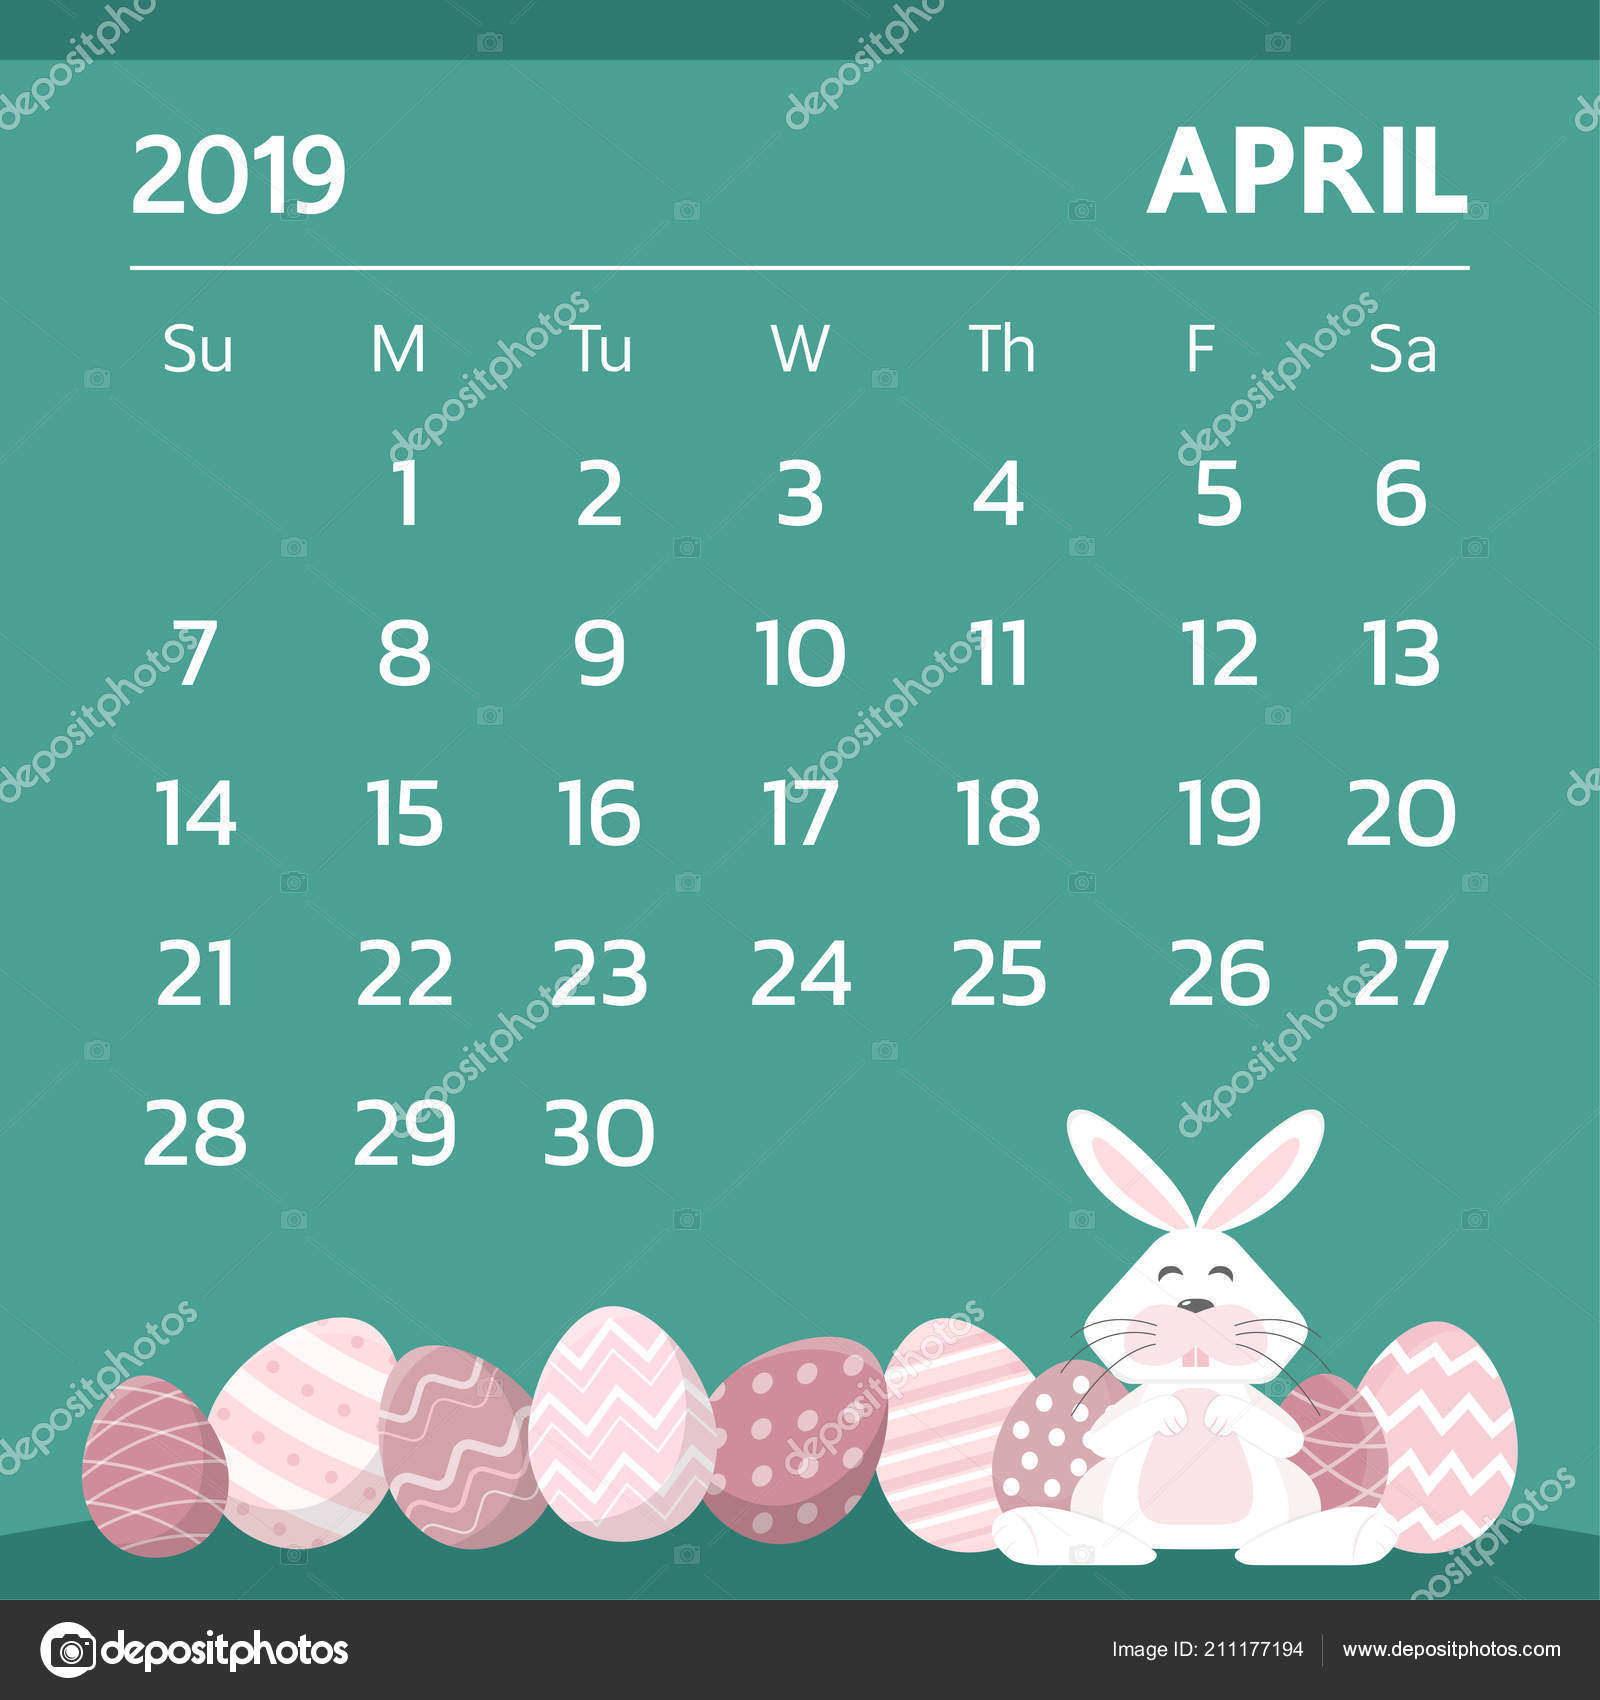 2019 Easter Calendar Calendar April 2019 Easter Egg Theme Vector — Stock Vector